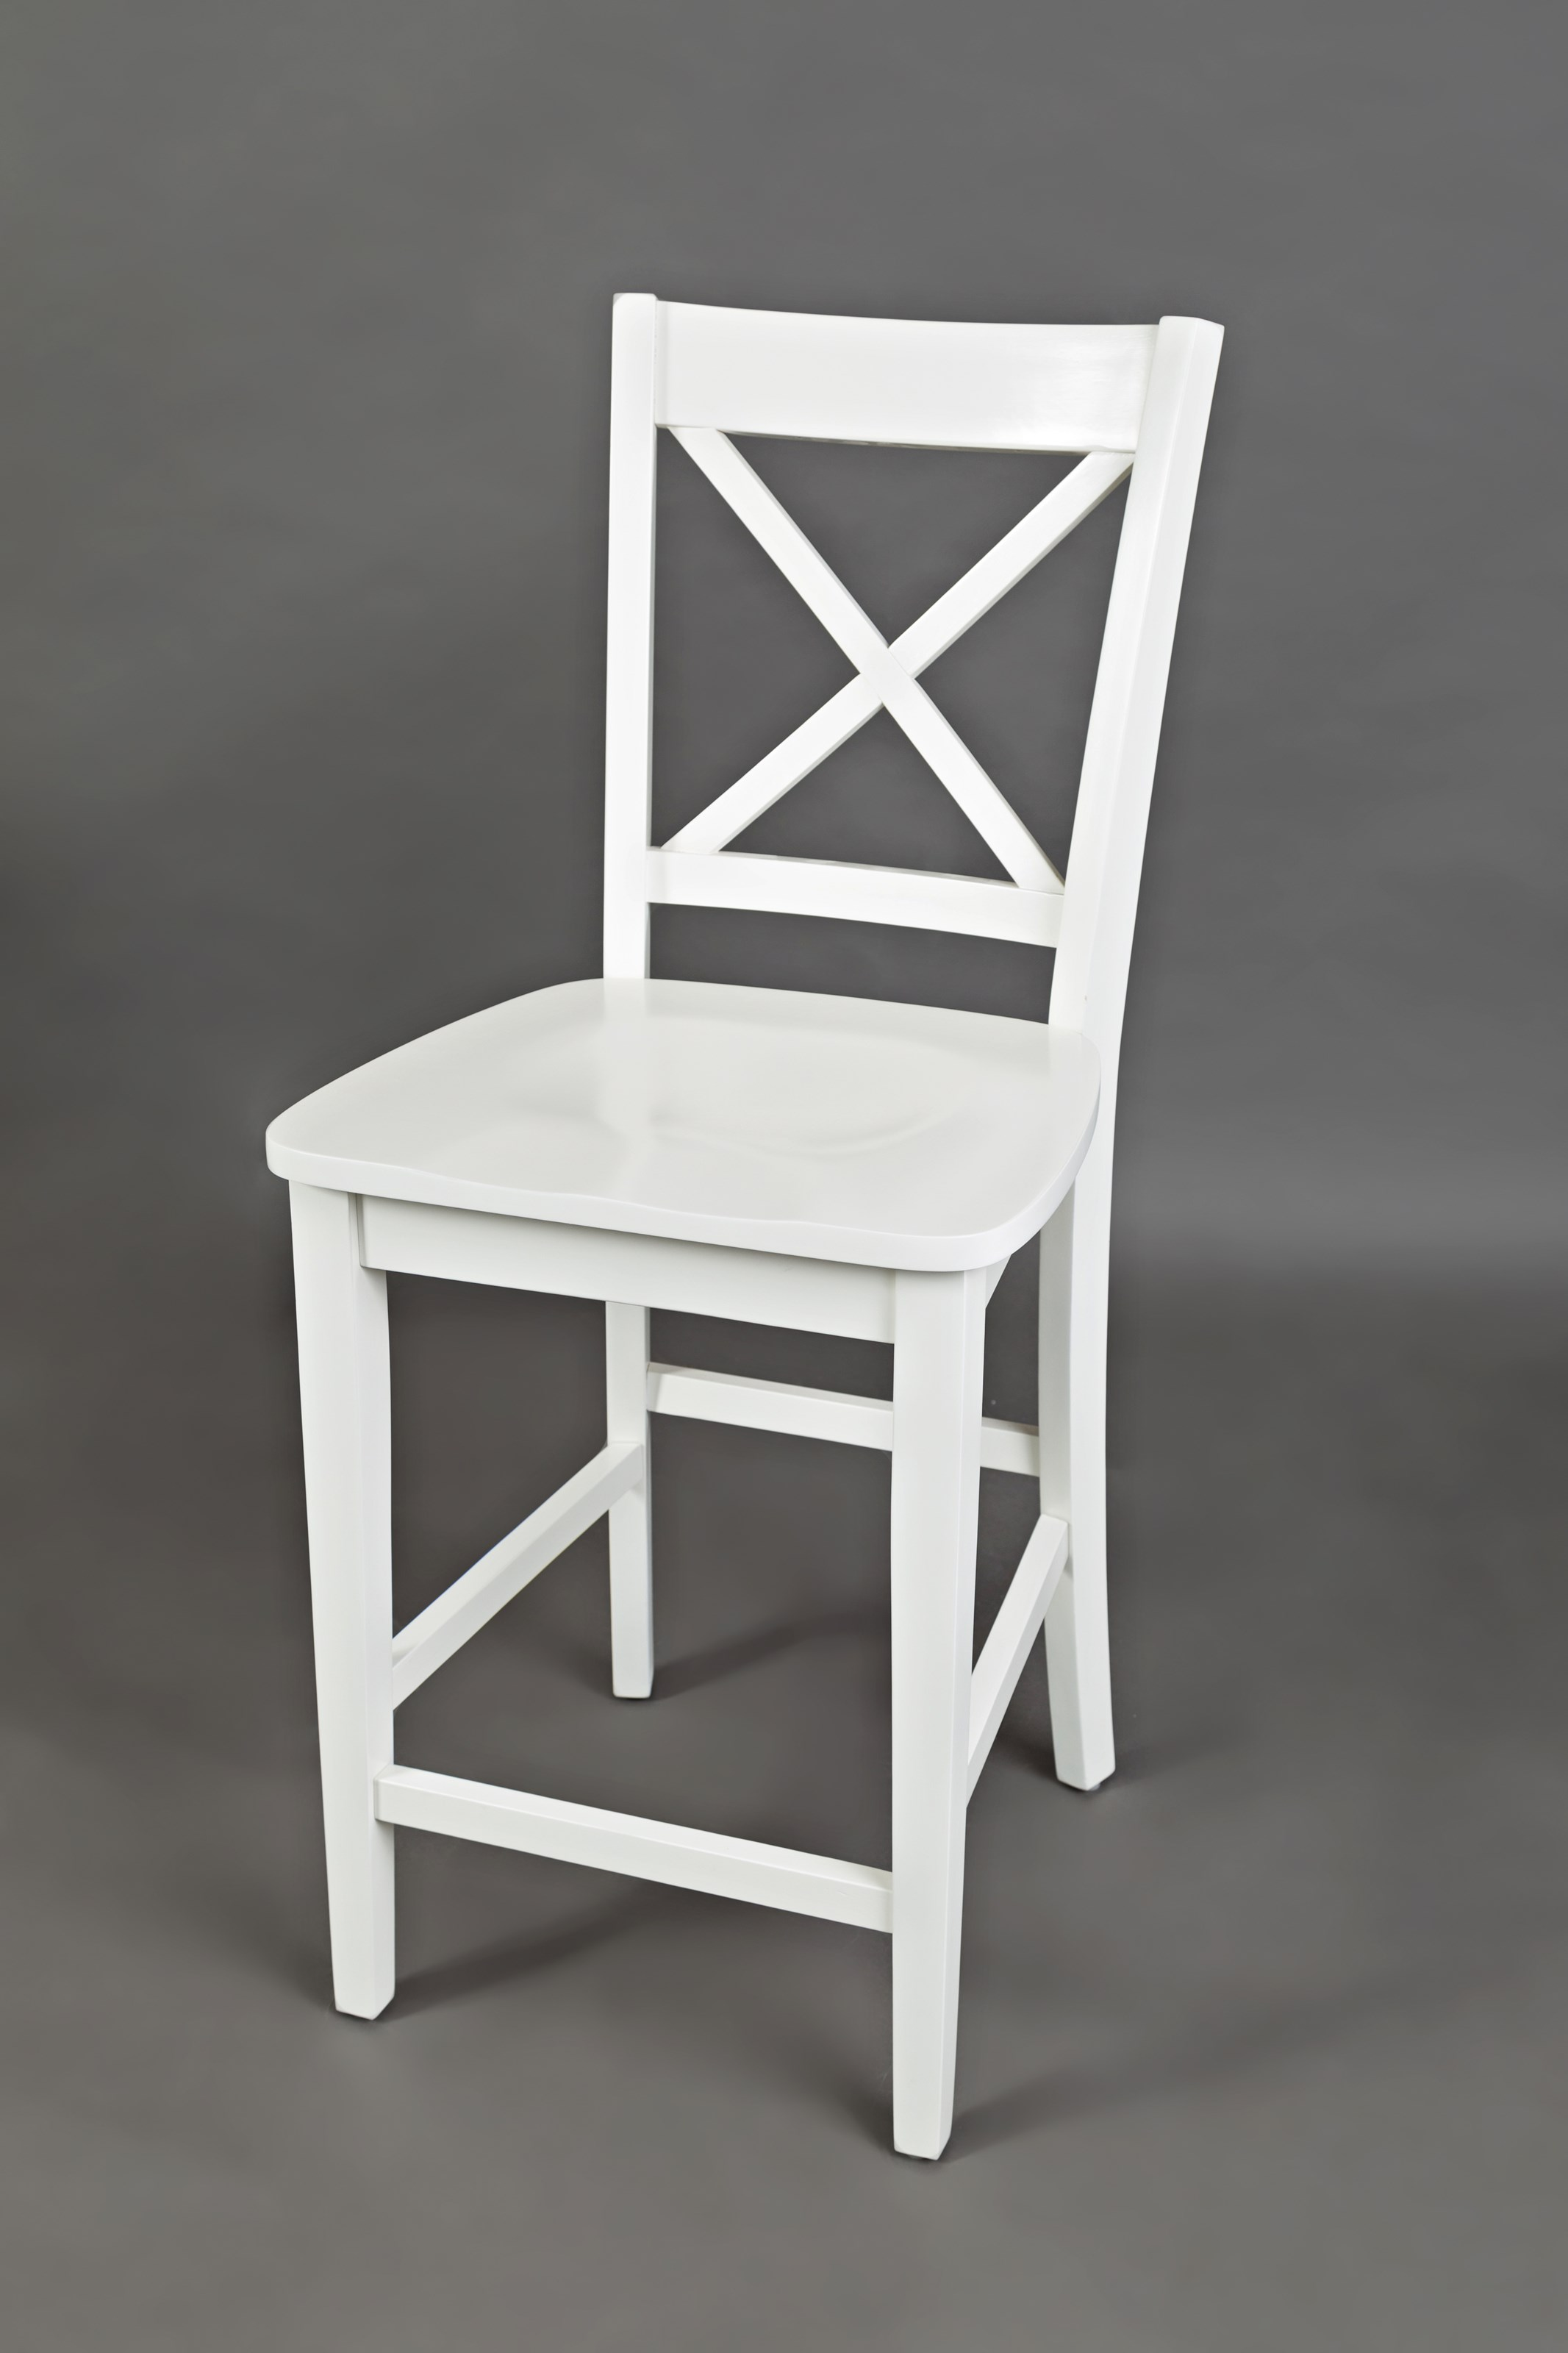 Jofran Simplicity X Back Stool Counter Height Value